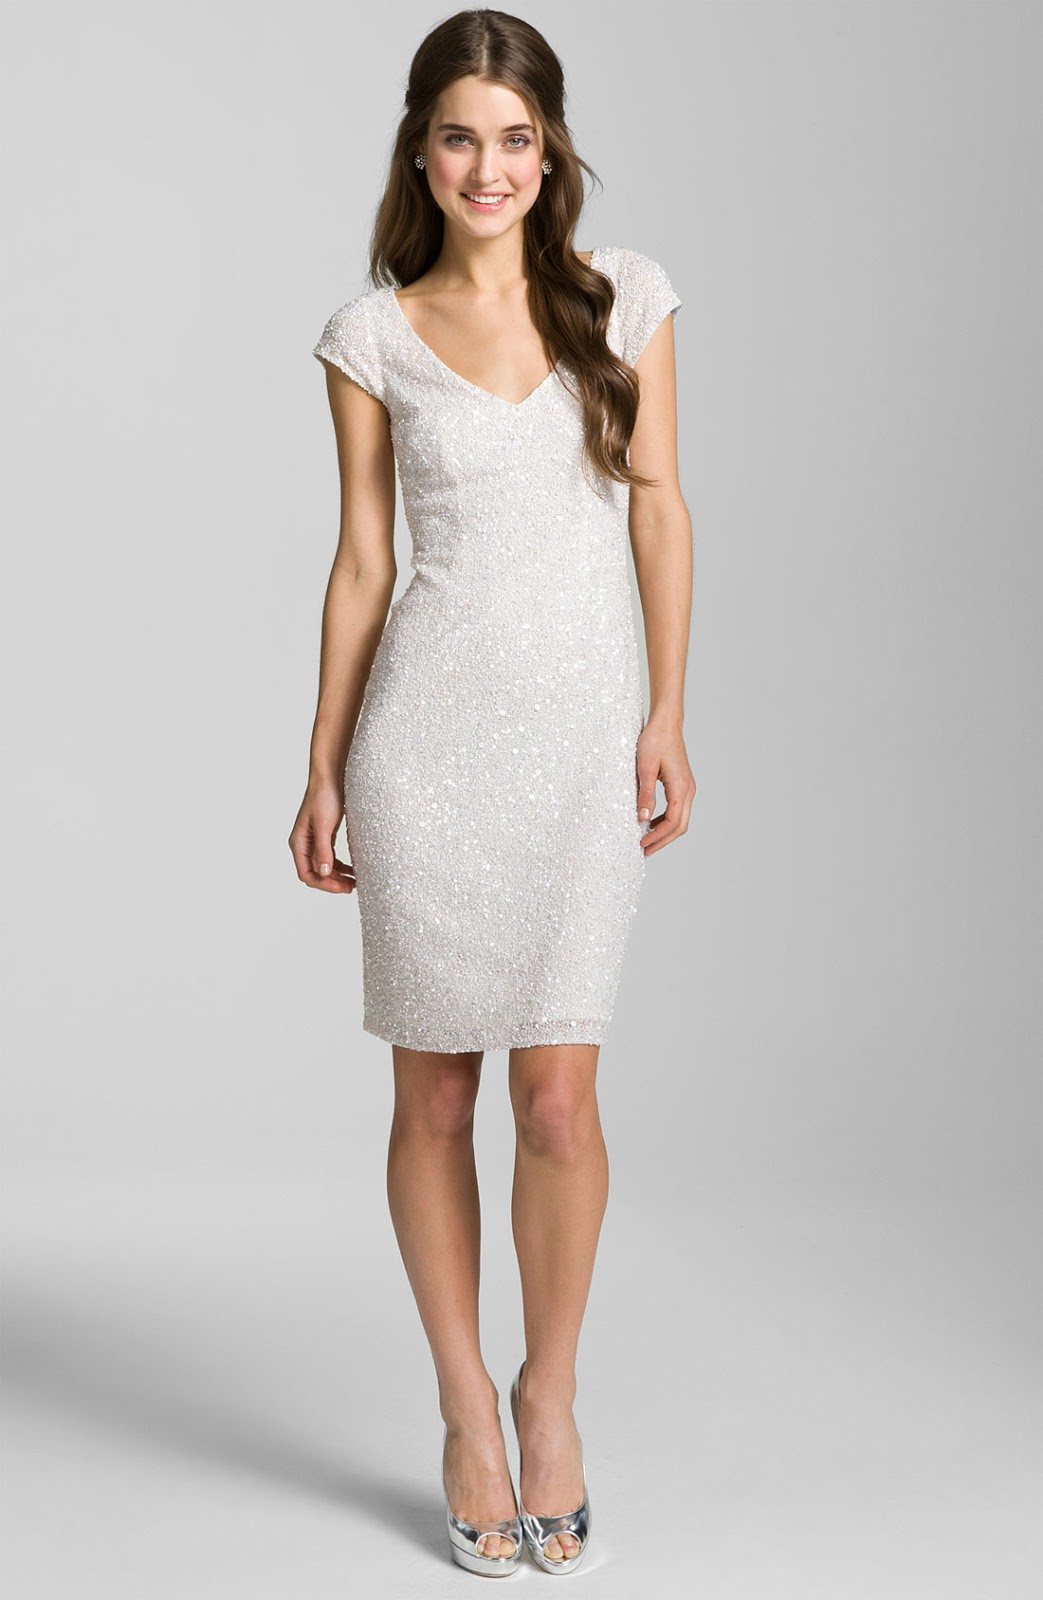 A sheath dress features a silhouette that fits close to the body and can have a hemline that hits anywhere from mid-thigh to mid-calf. A sheath by definition (think about the sheath of a sword, for example) is meant to hold close to that which it encases.